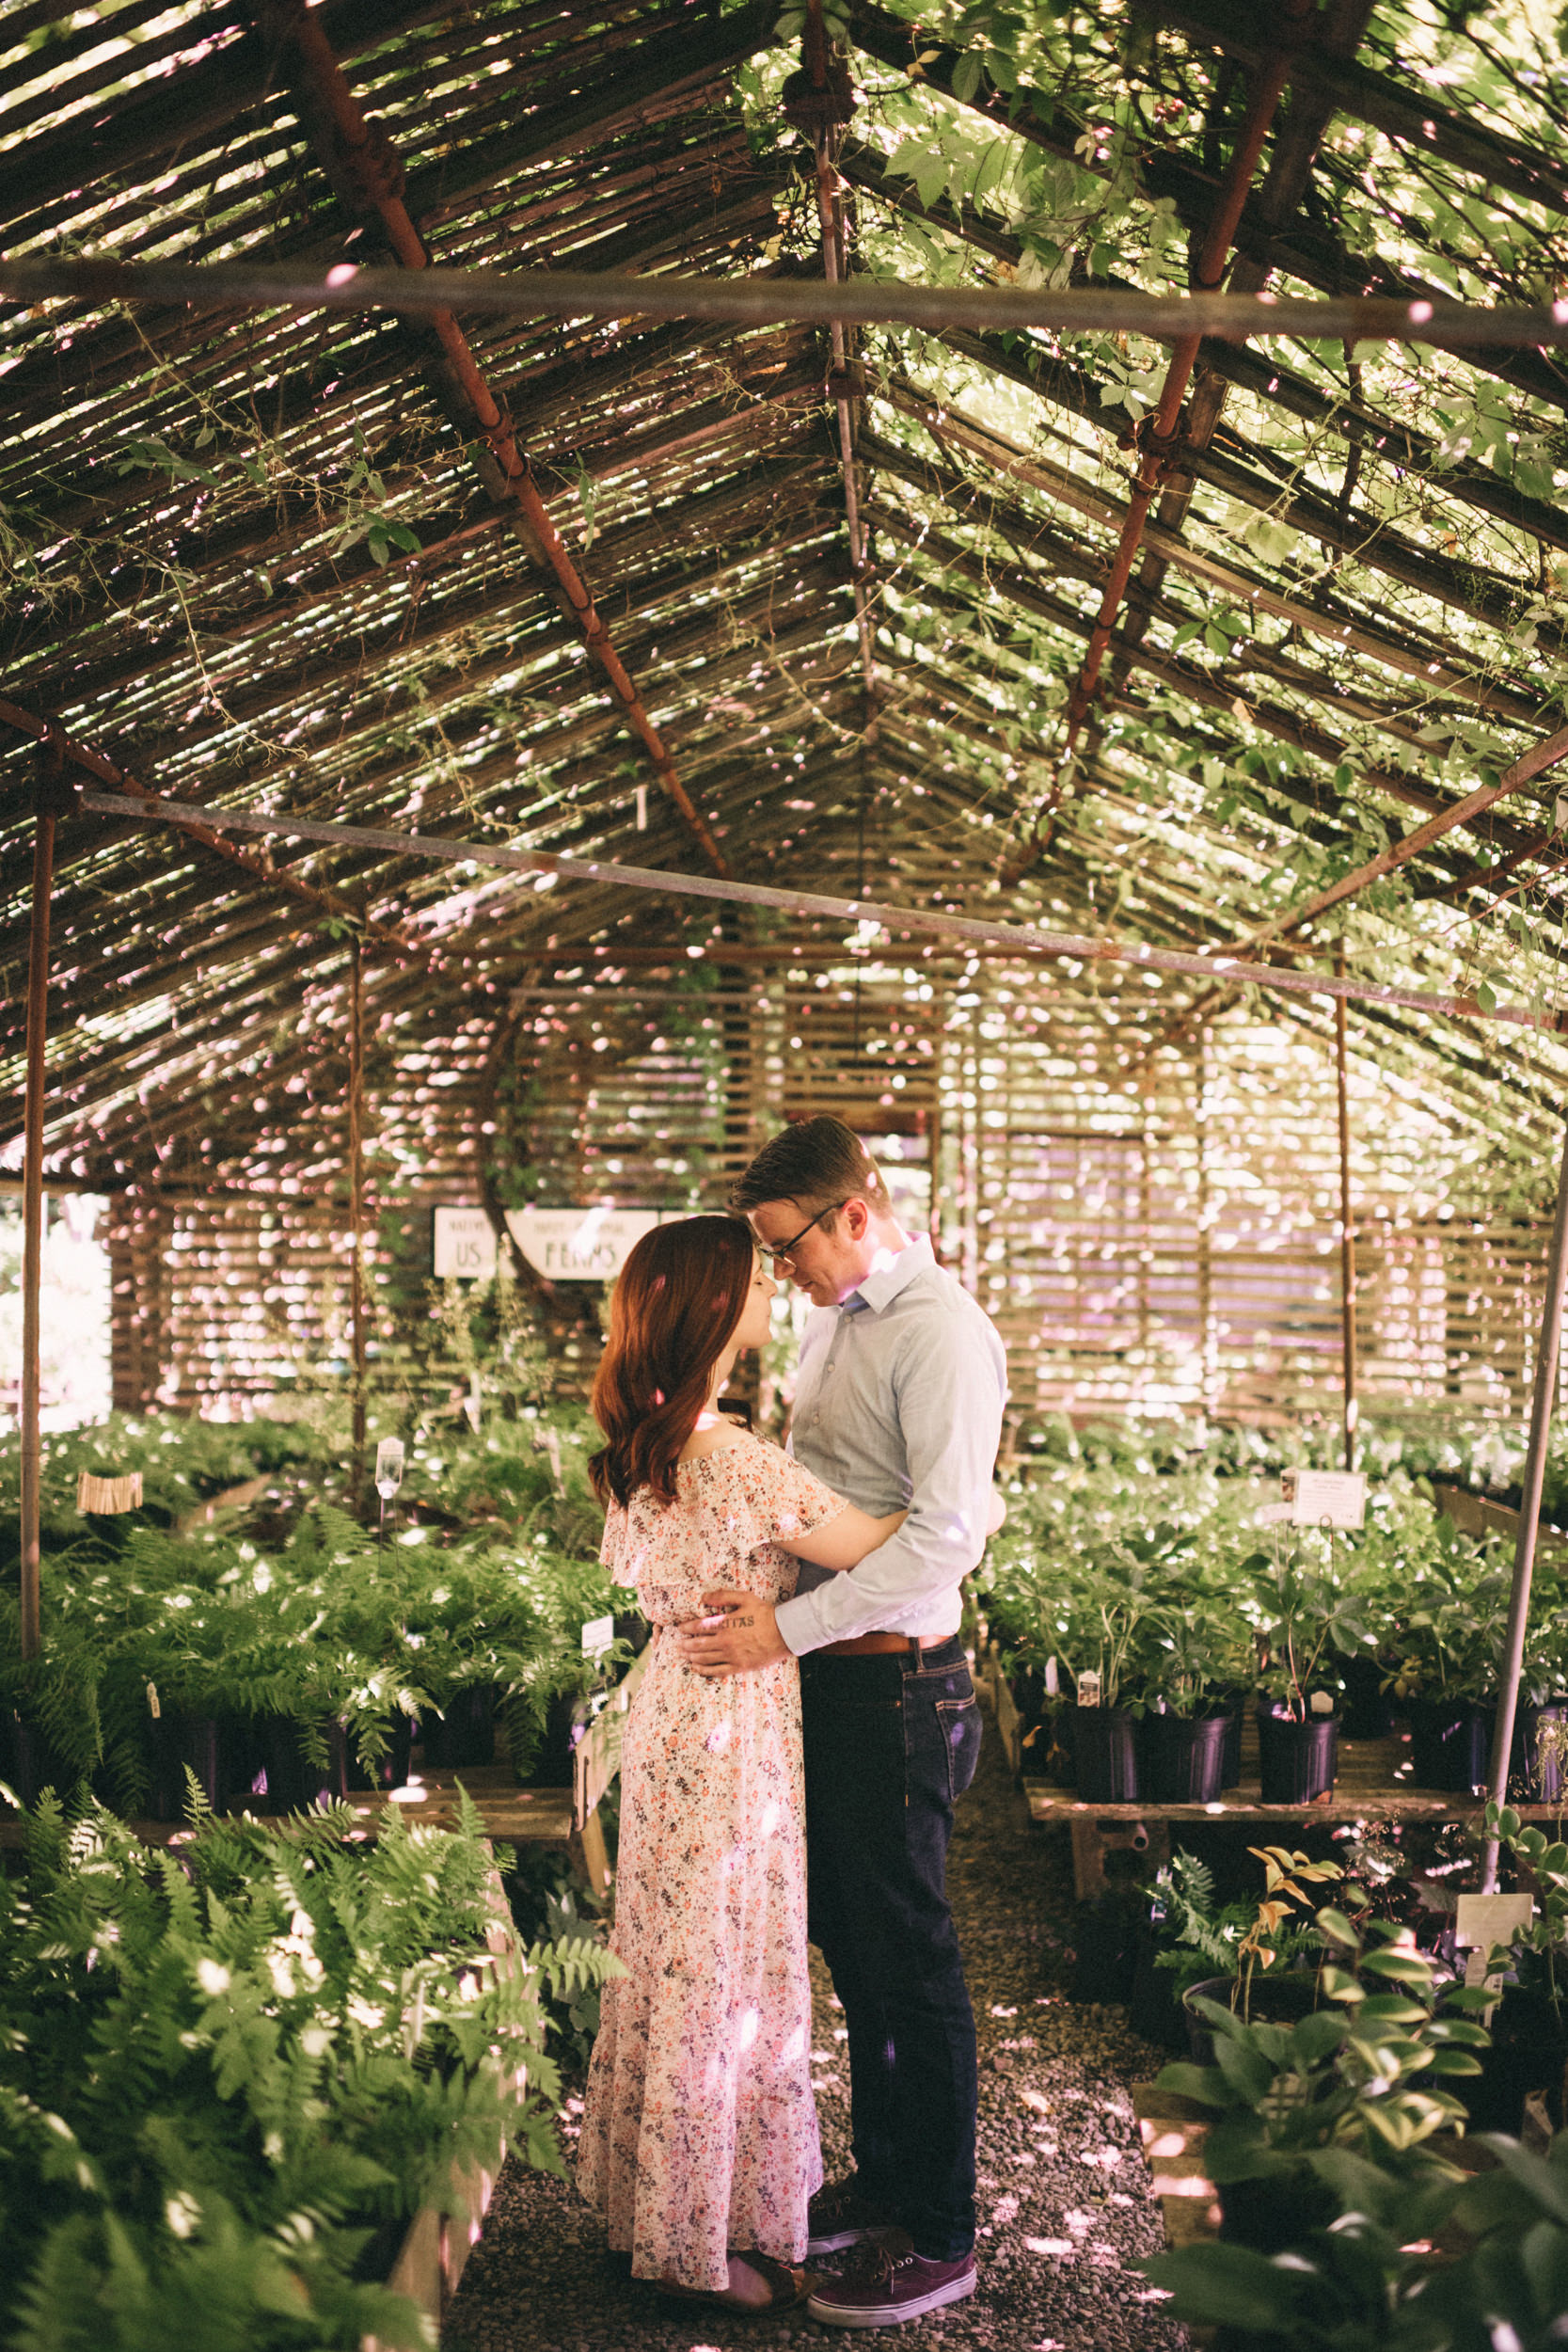 stephanie-brandon-sarah-katherine-davis-photographer-greenhouse-engagement-session-kentucky-47.jpg